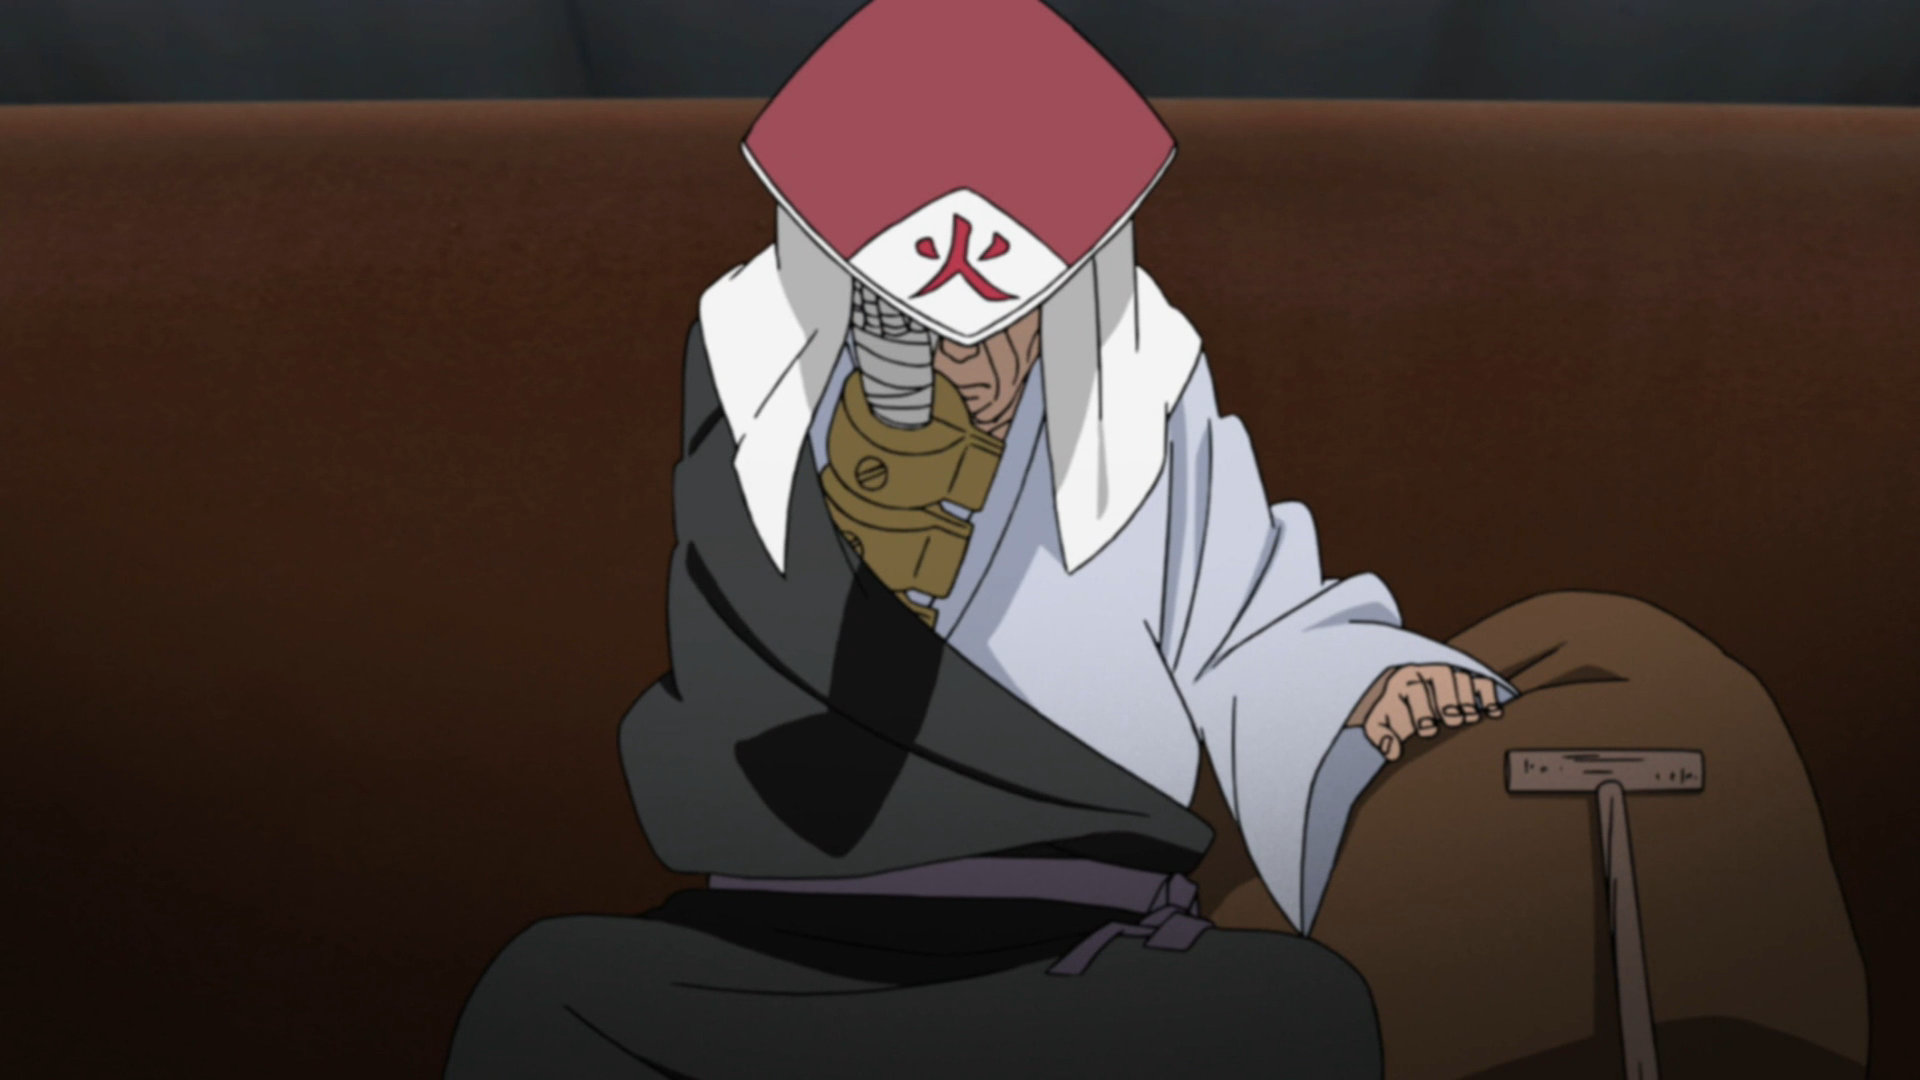 Will Naruto: The Last be available online the 6th? | Yahoo ...